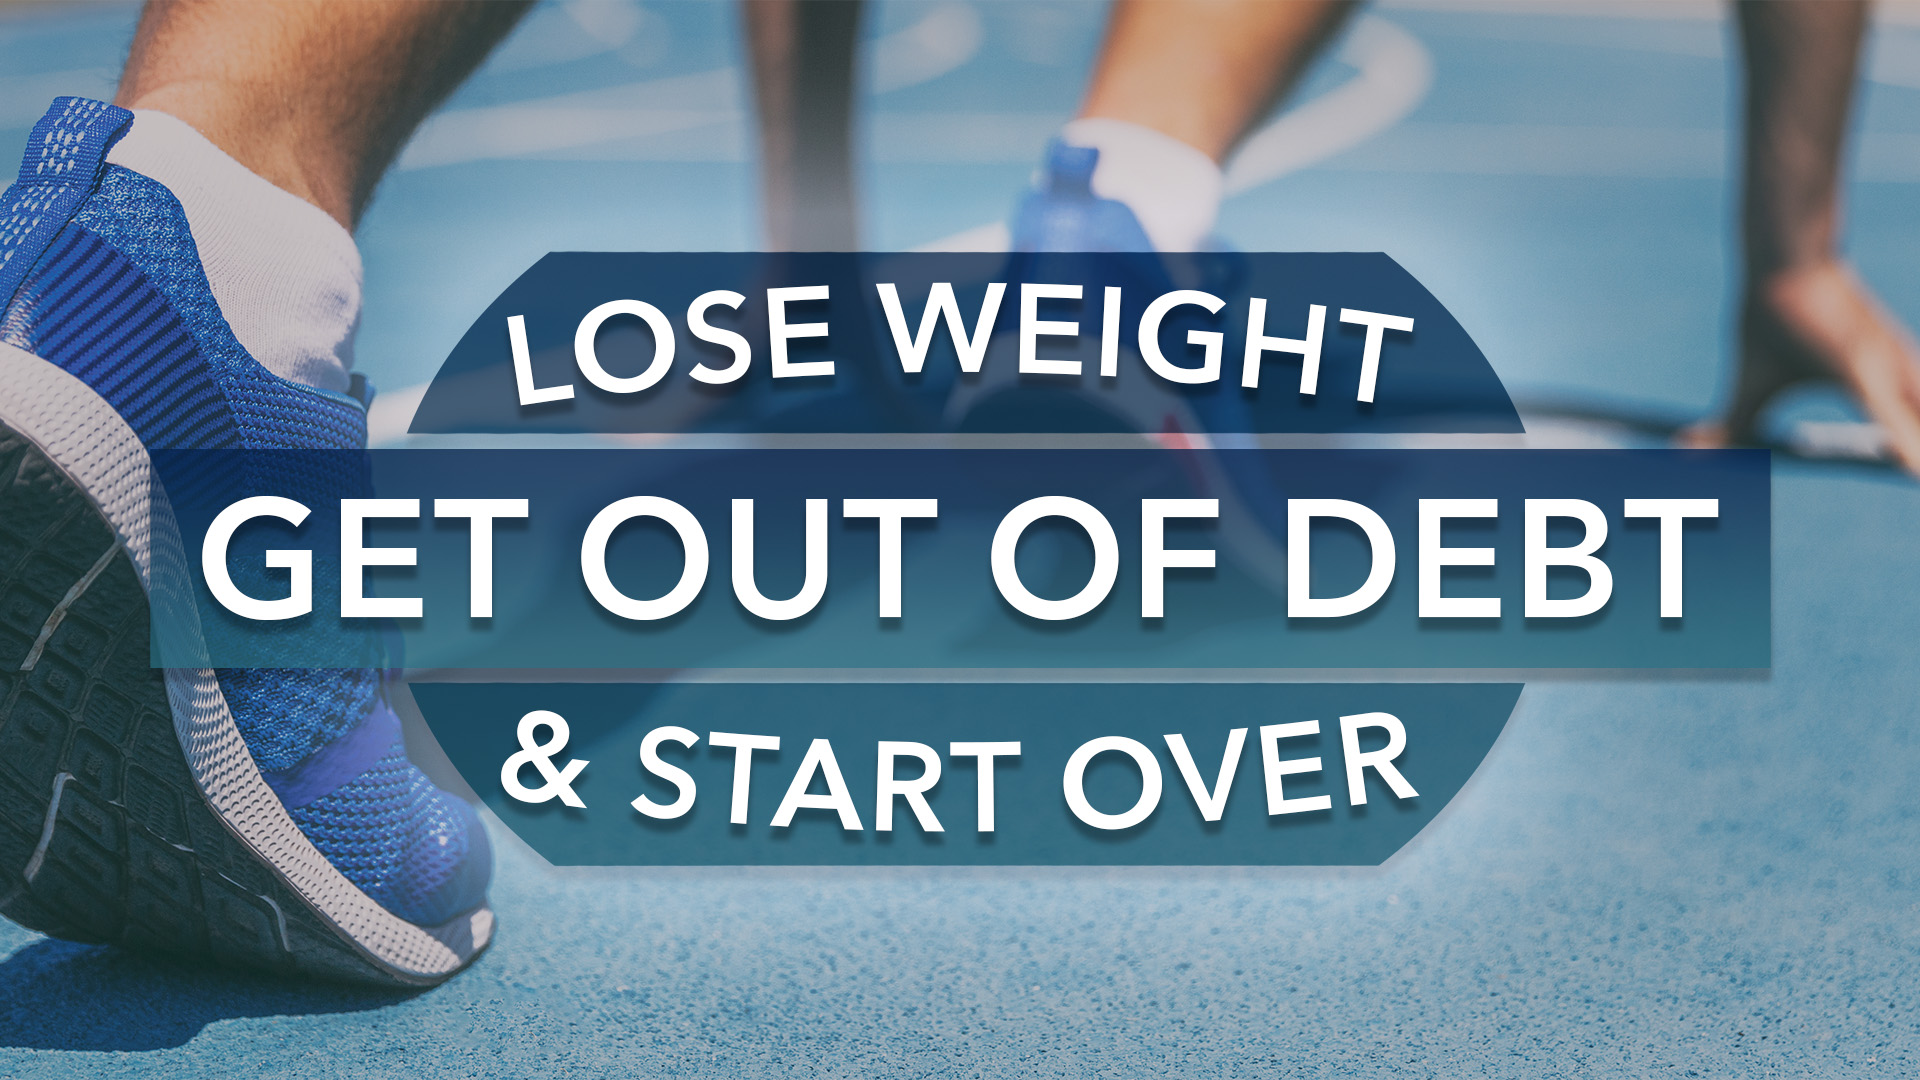 lose weight get out of debt.jpg